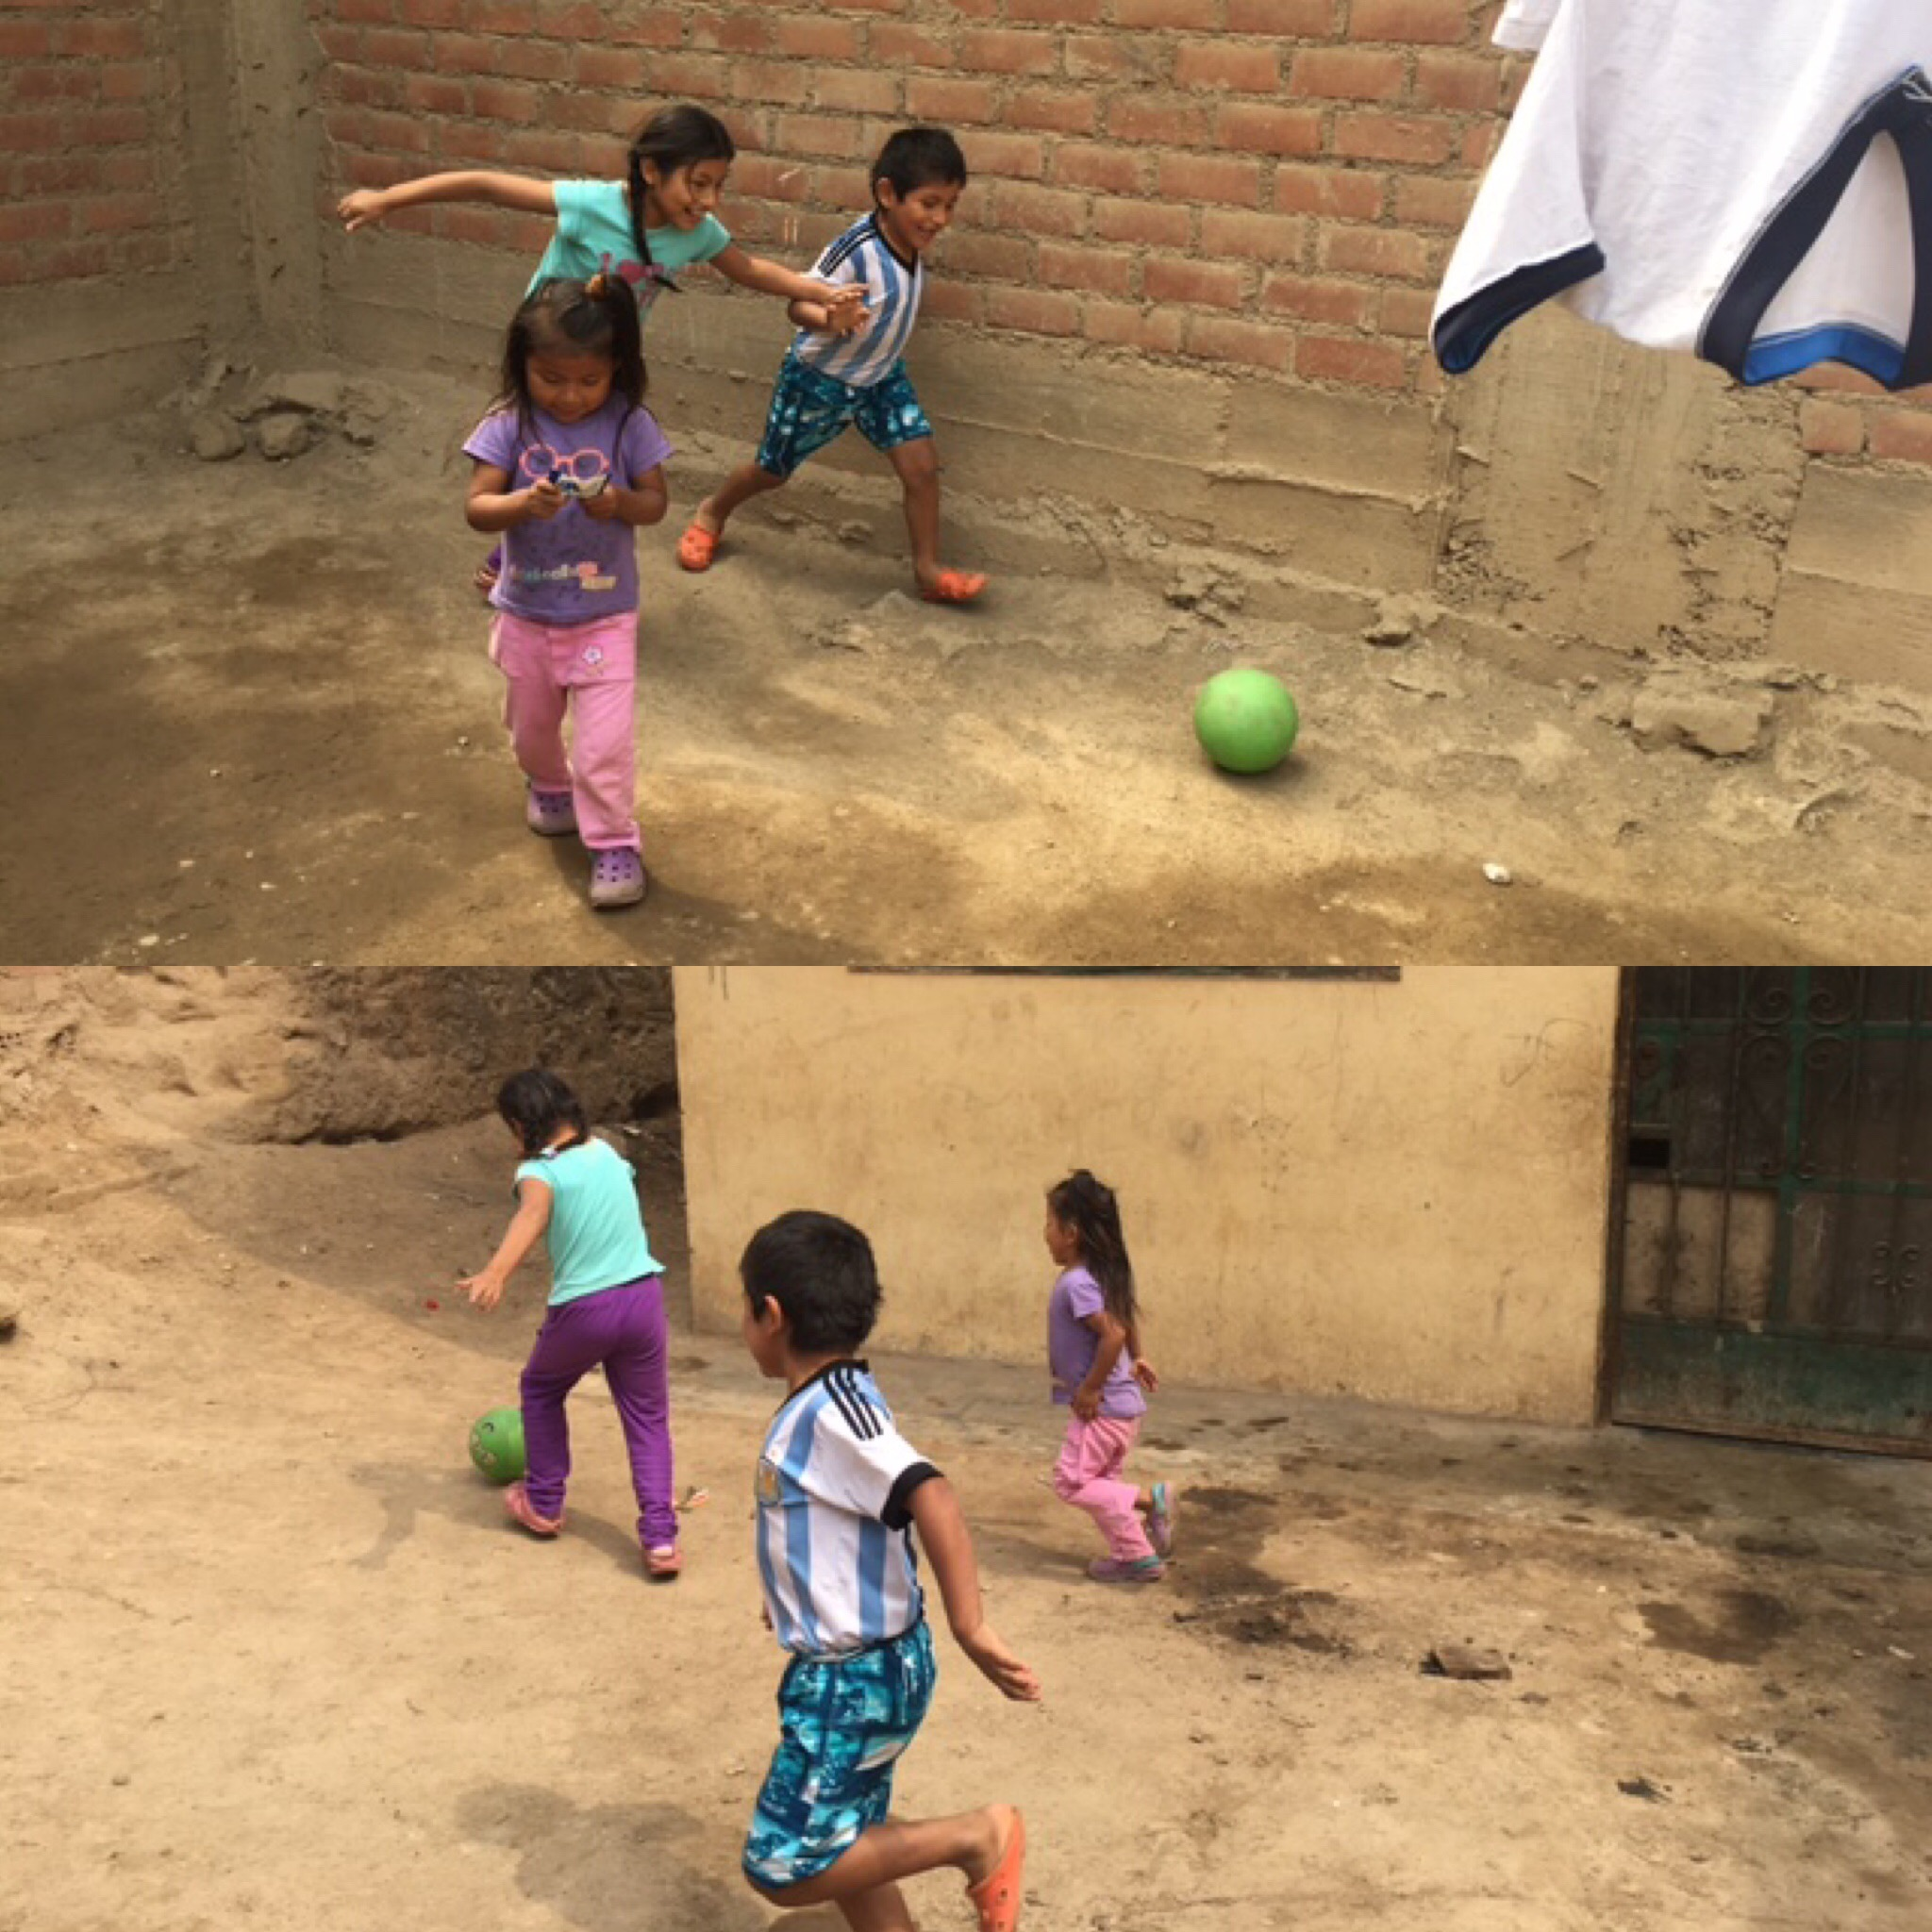 ending child labor, Julieth plays soccer with her siblings.